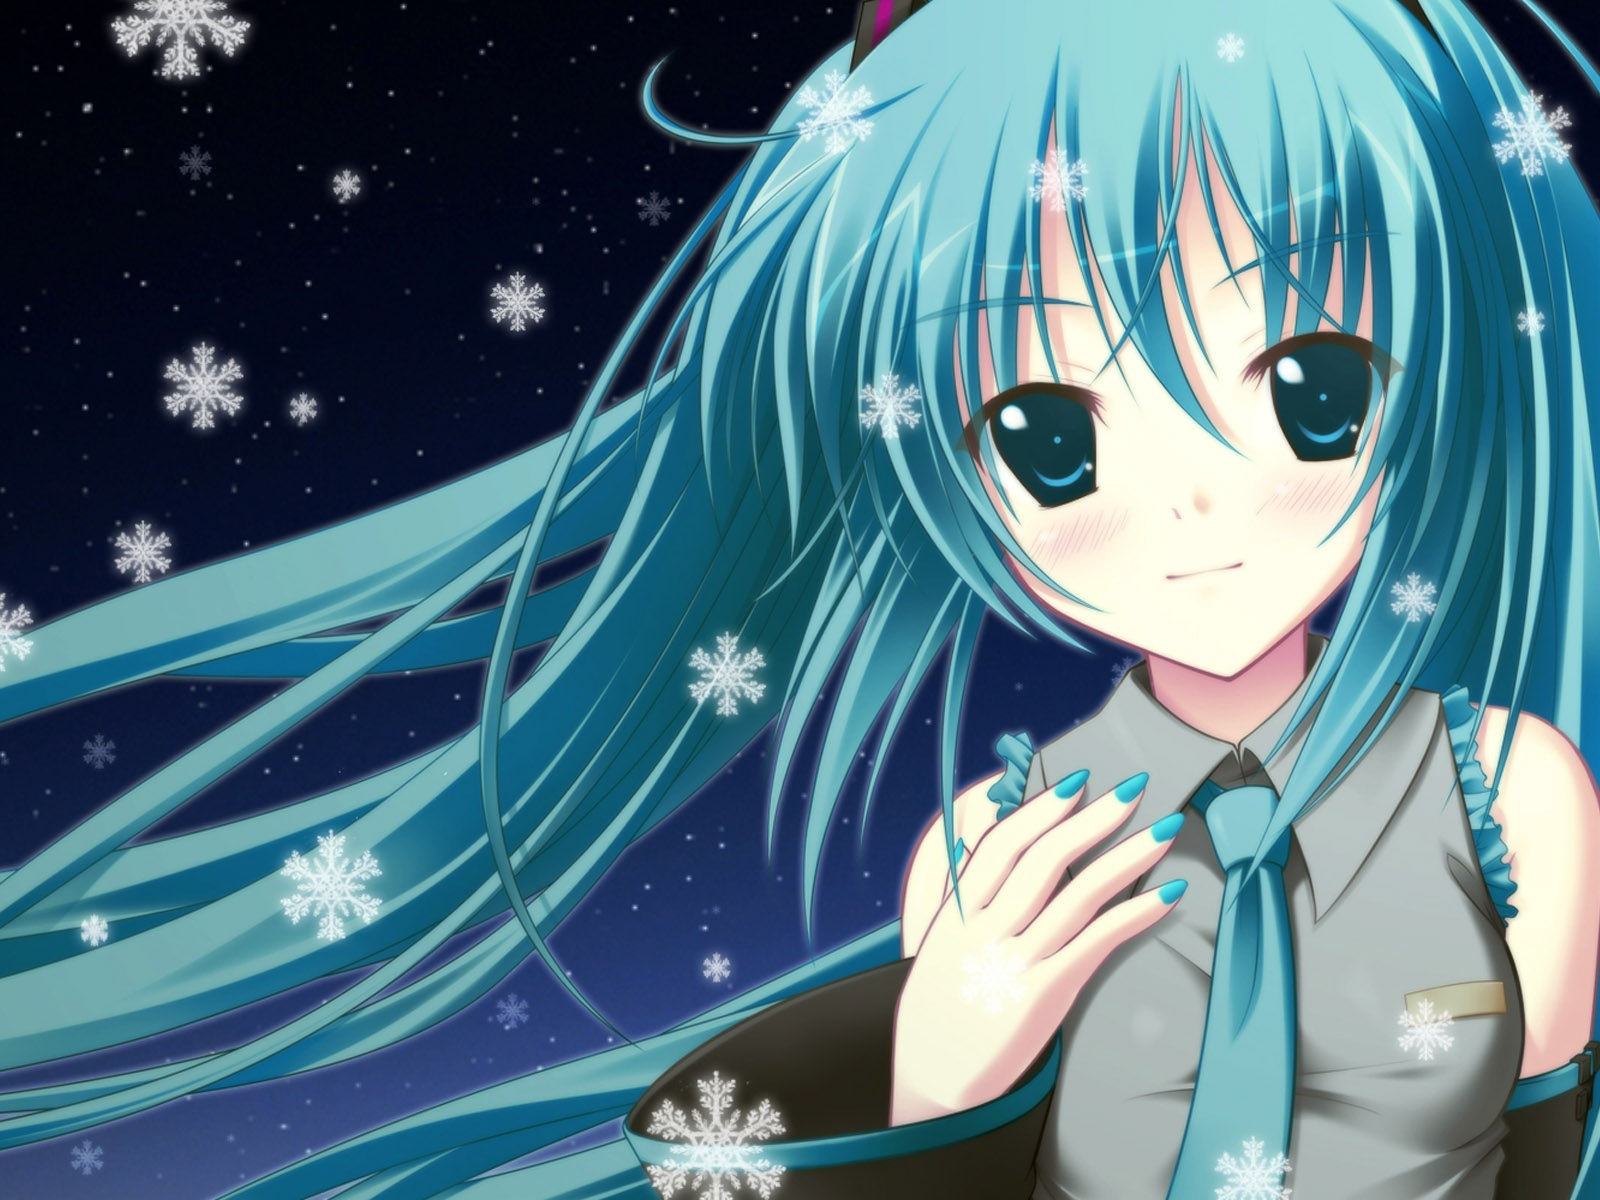 wallpaper blue hair anime girl 1920x1200 hd picture image